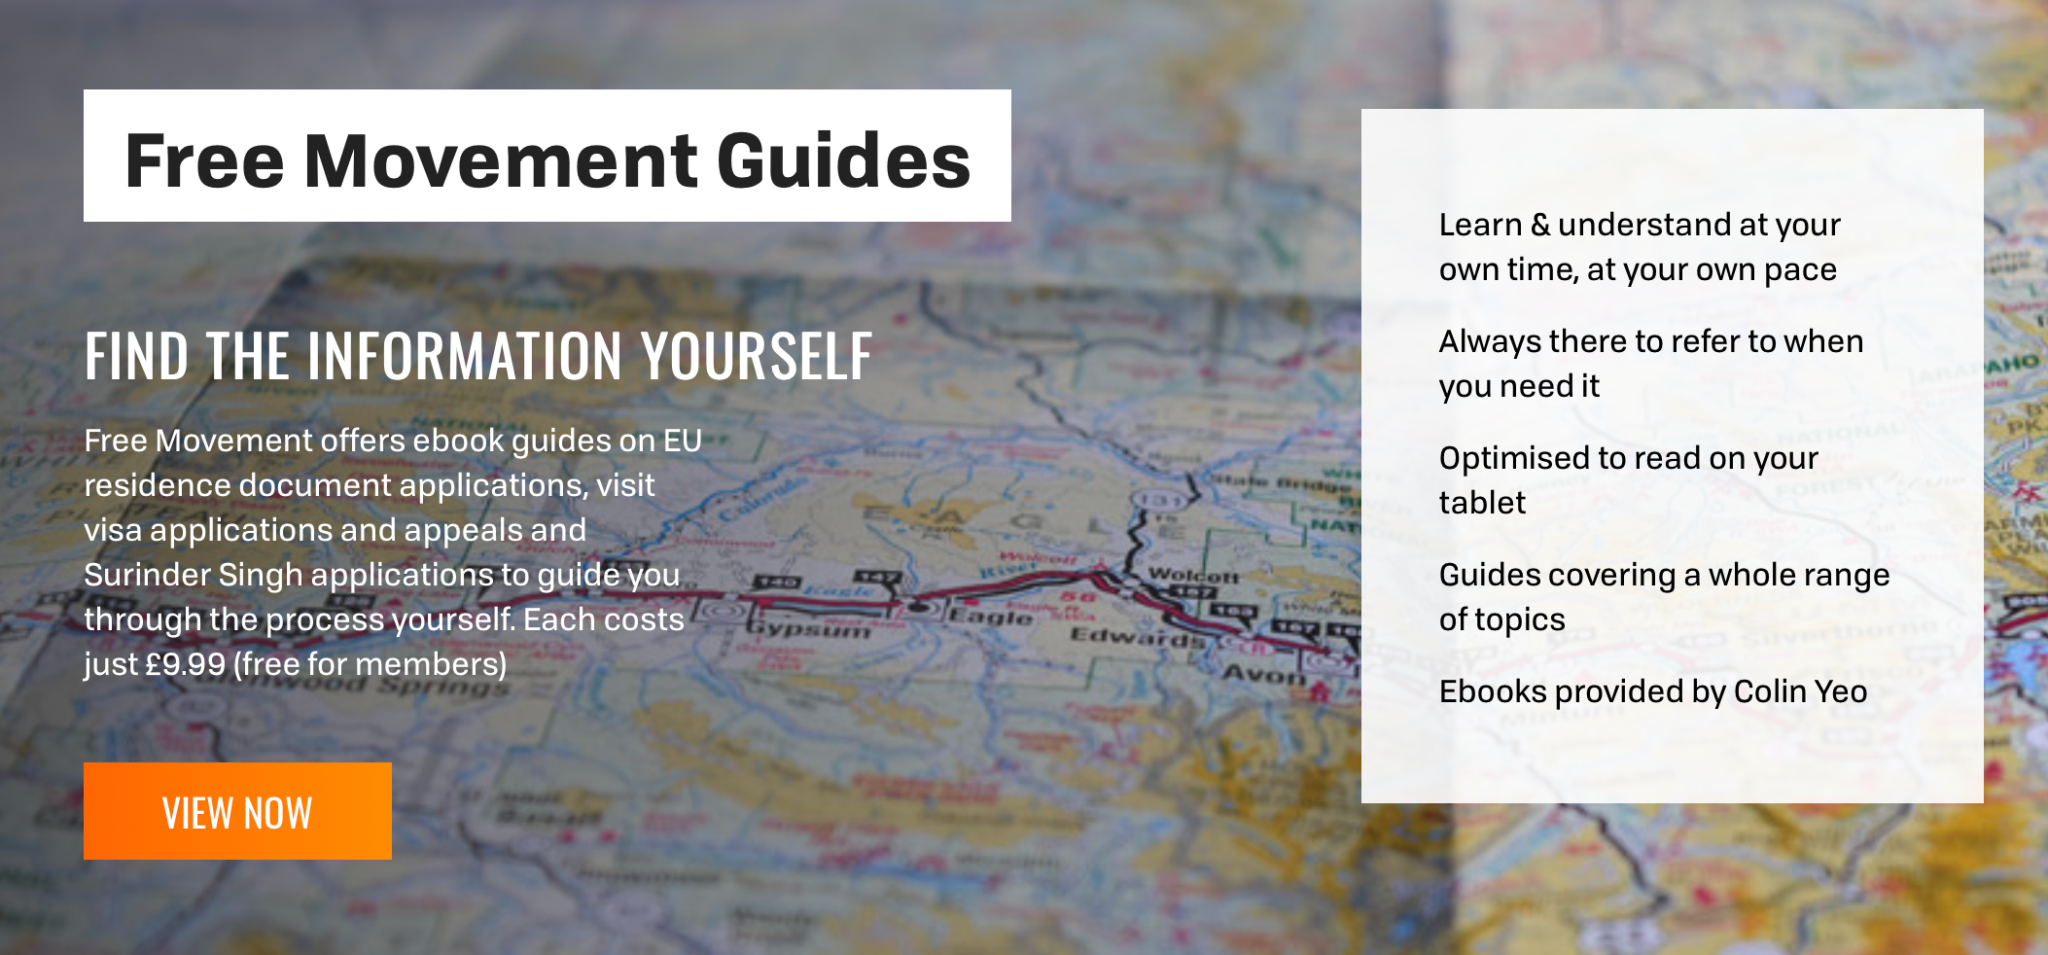 Free Movement Guides ebooks ad